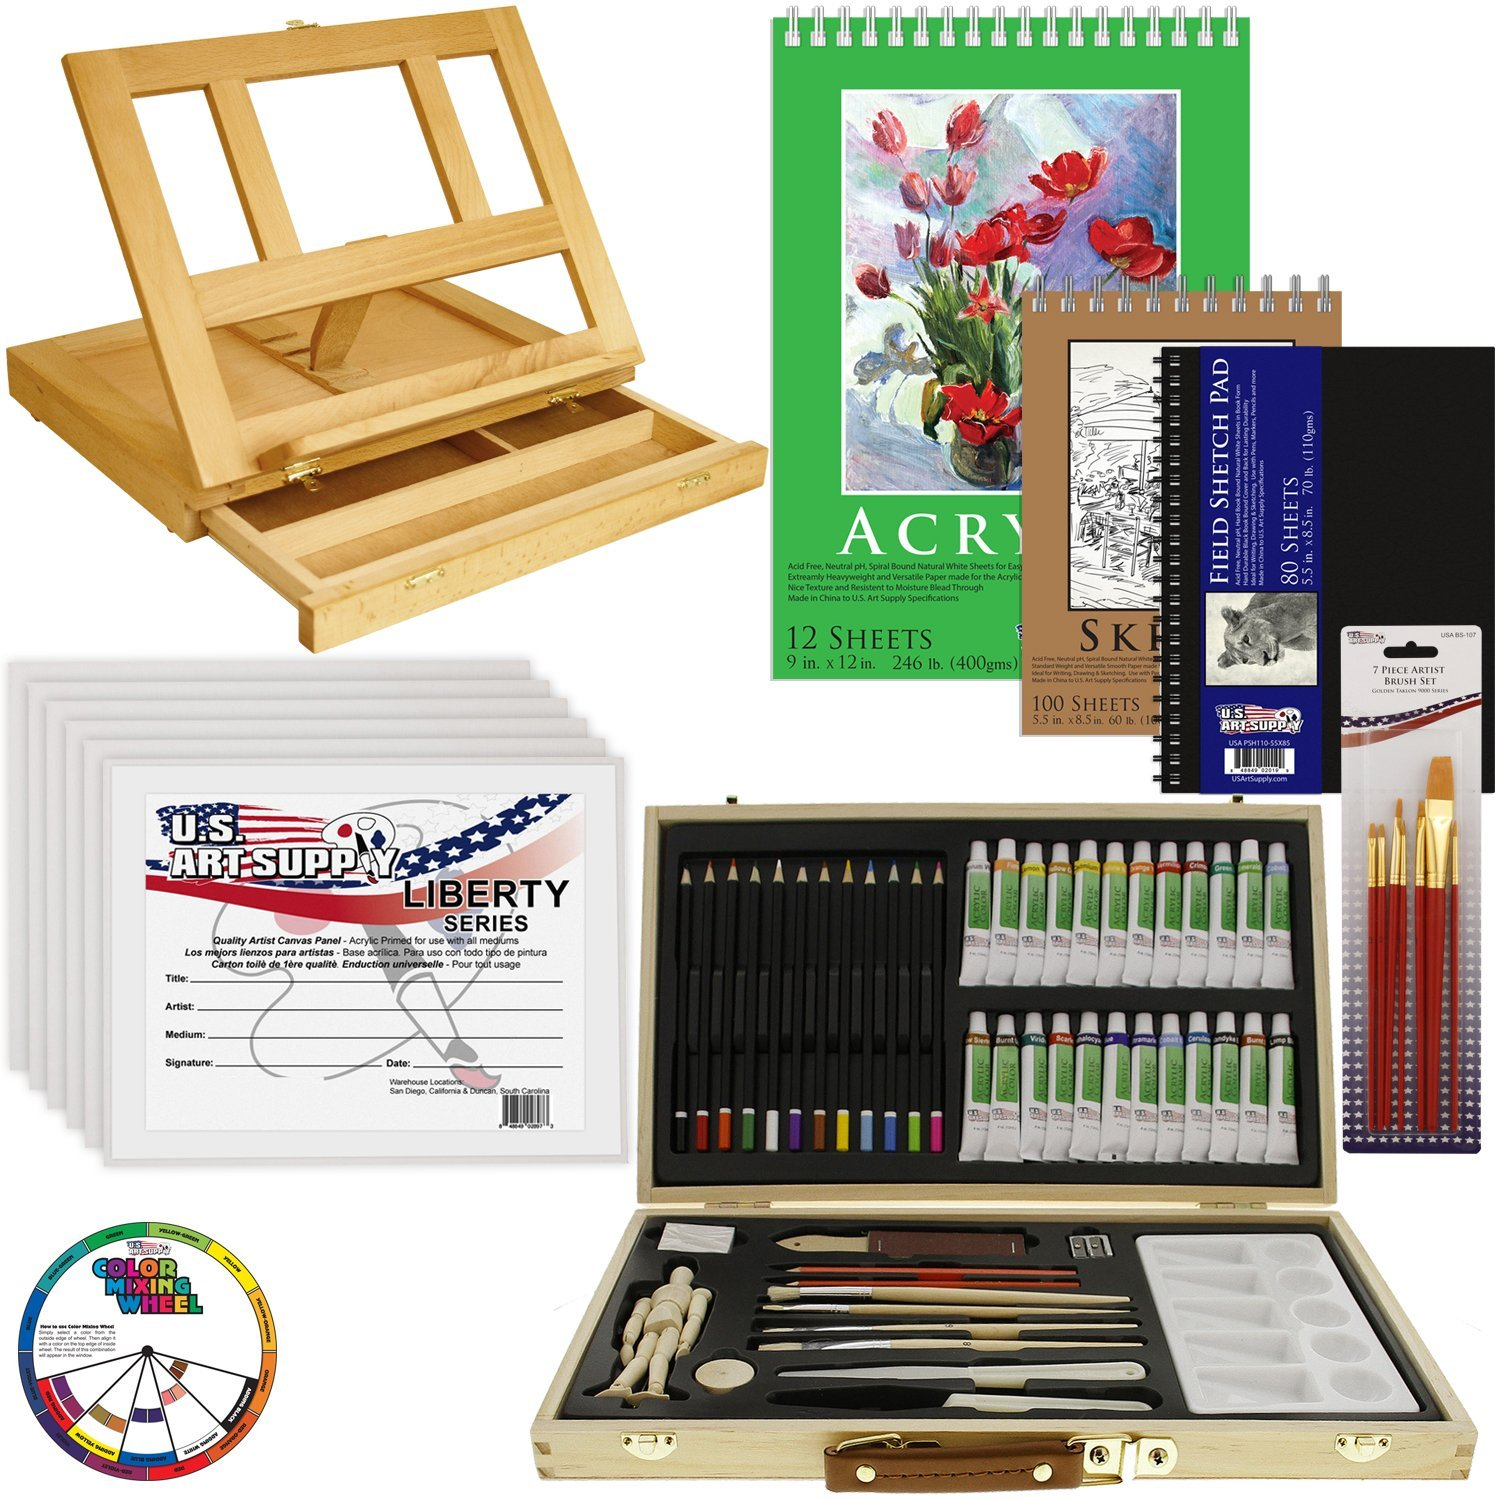 68pc Artist Acrylic Painting Set Wood Table Easel Paint Canvas